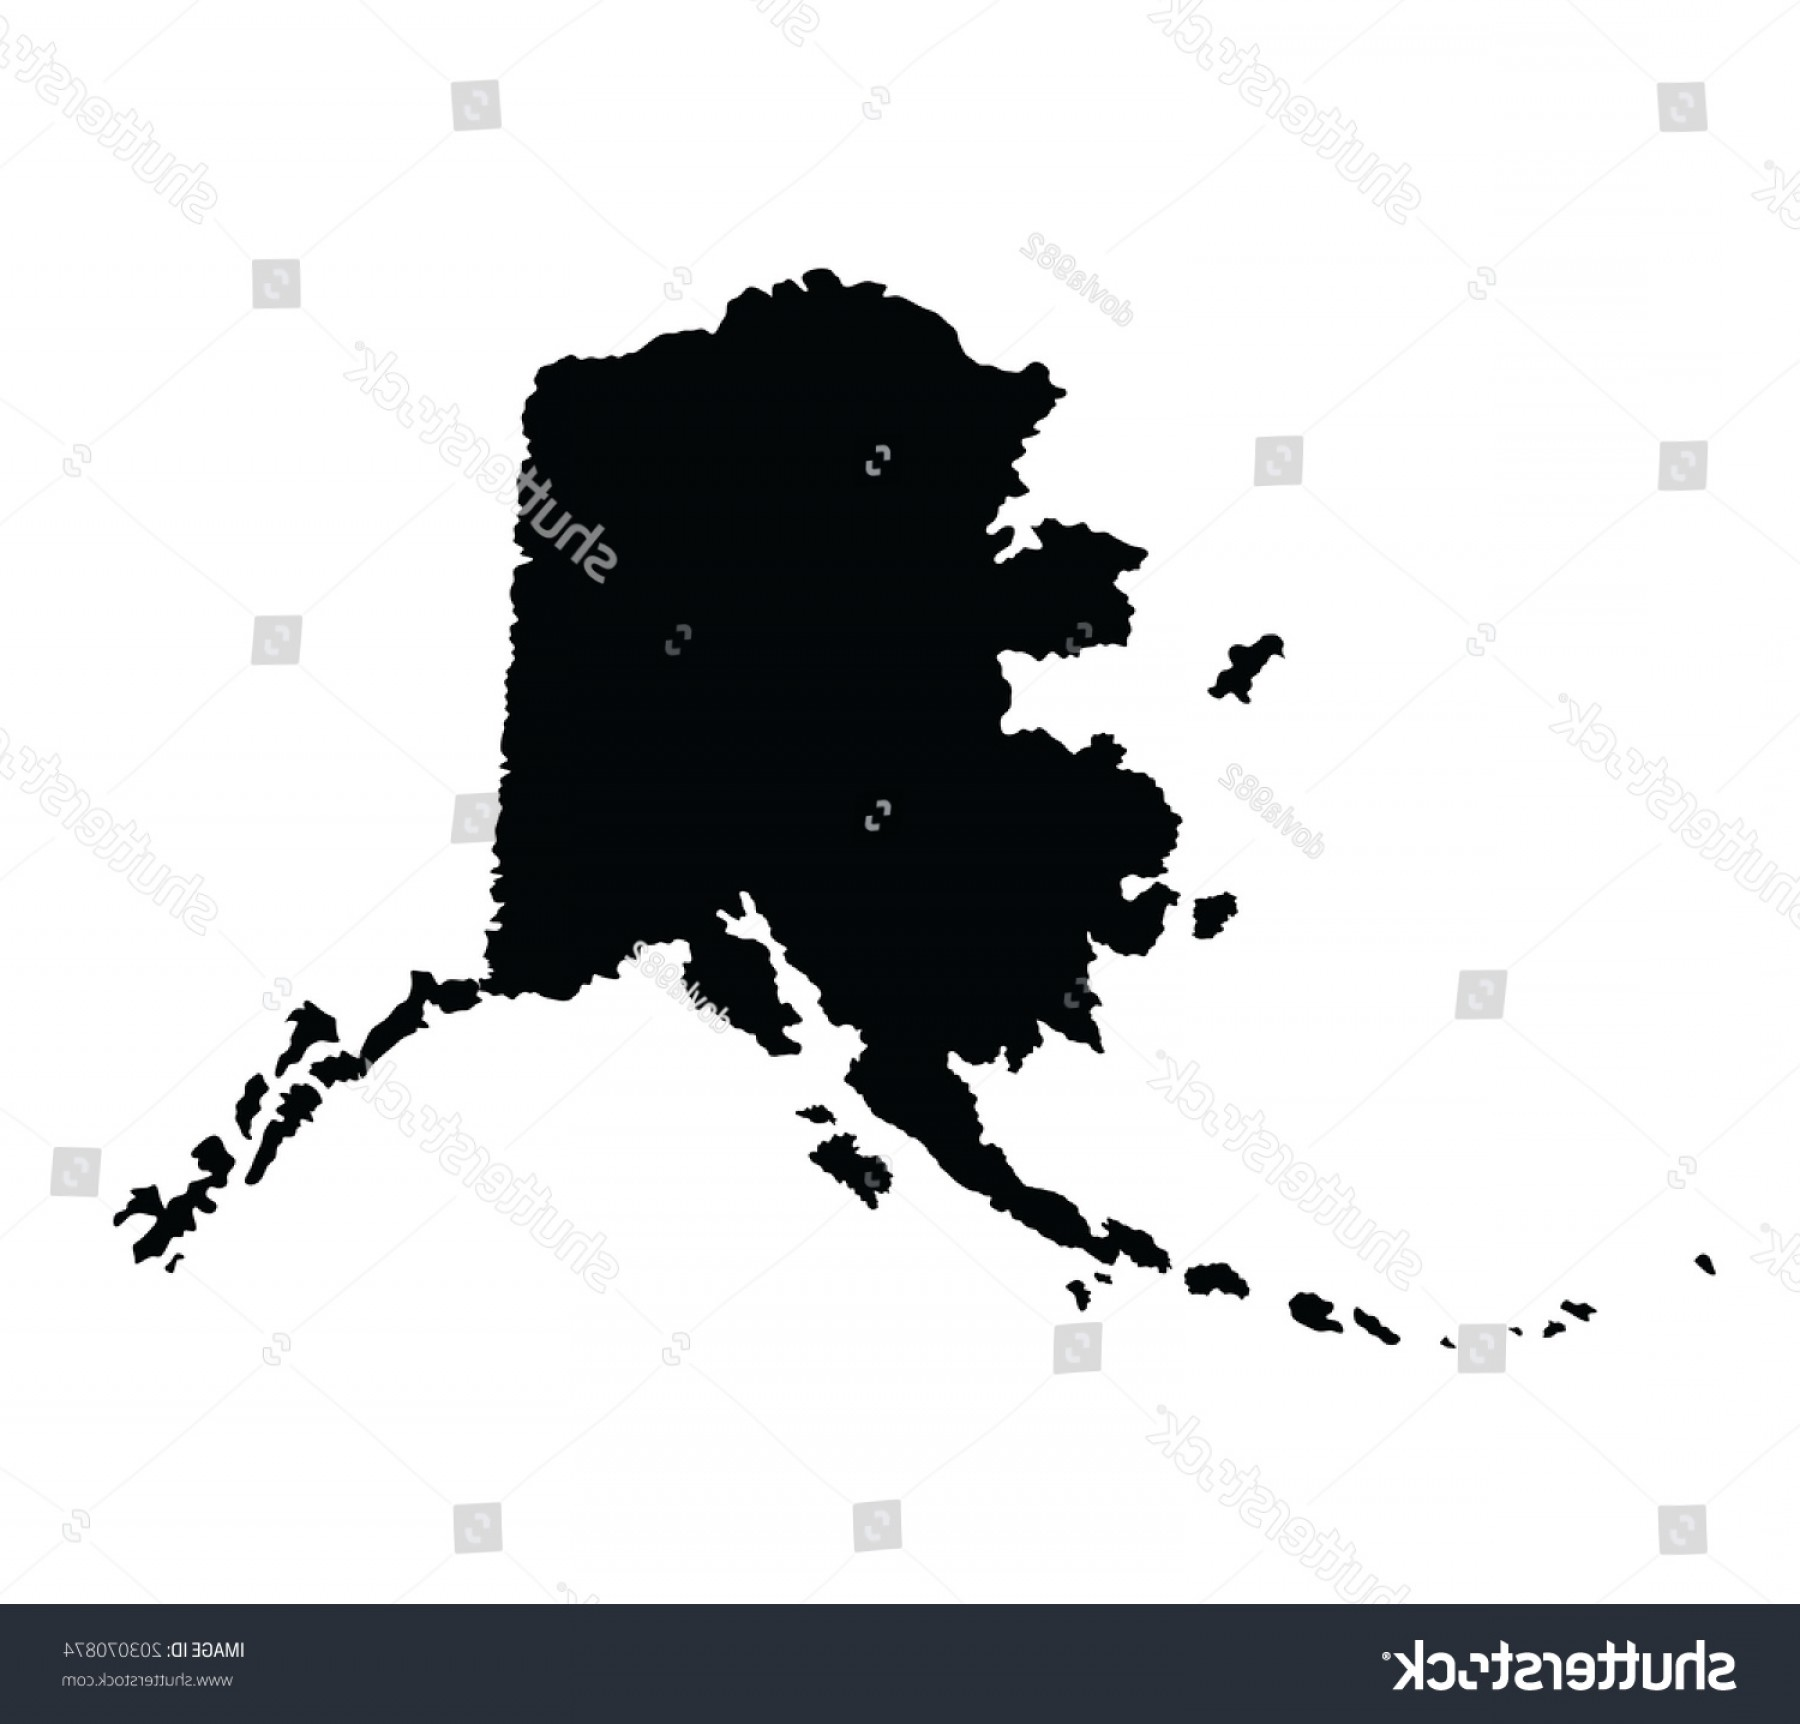 Alaska State White Background Vectors: Alaska Vector Map Silhouette Isolated On